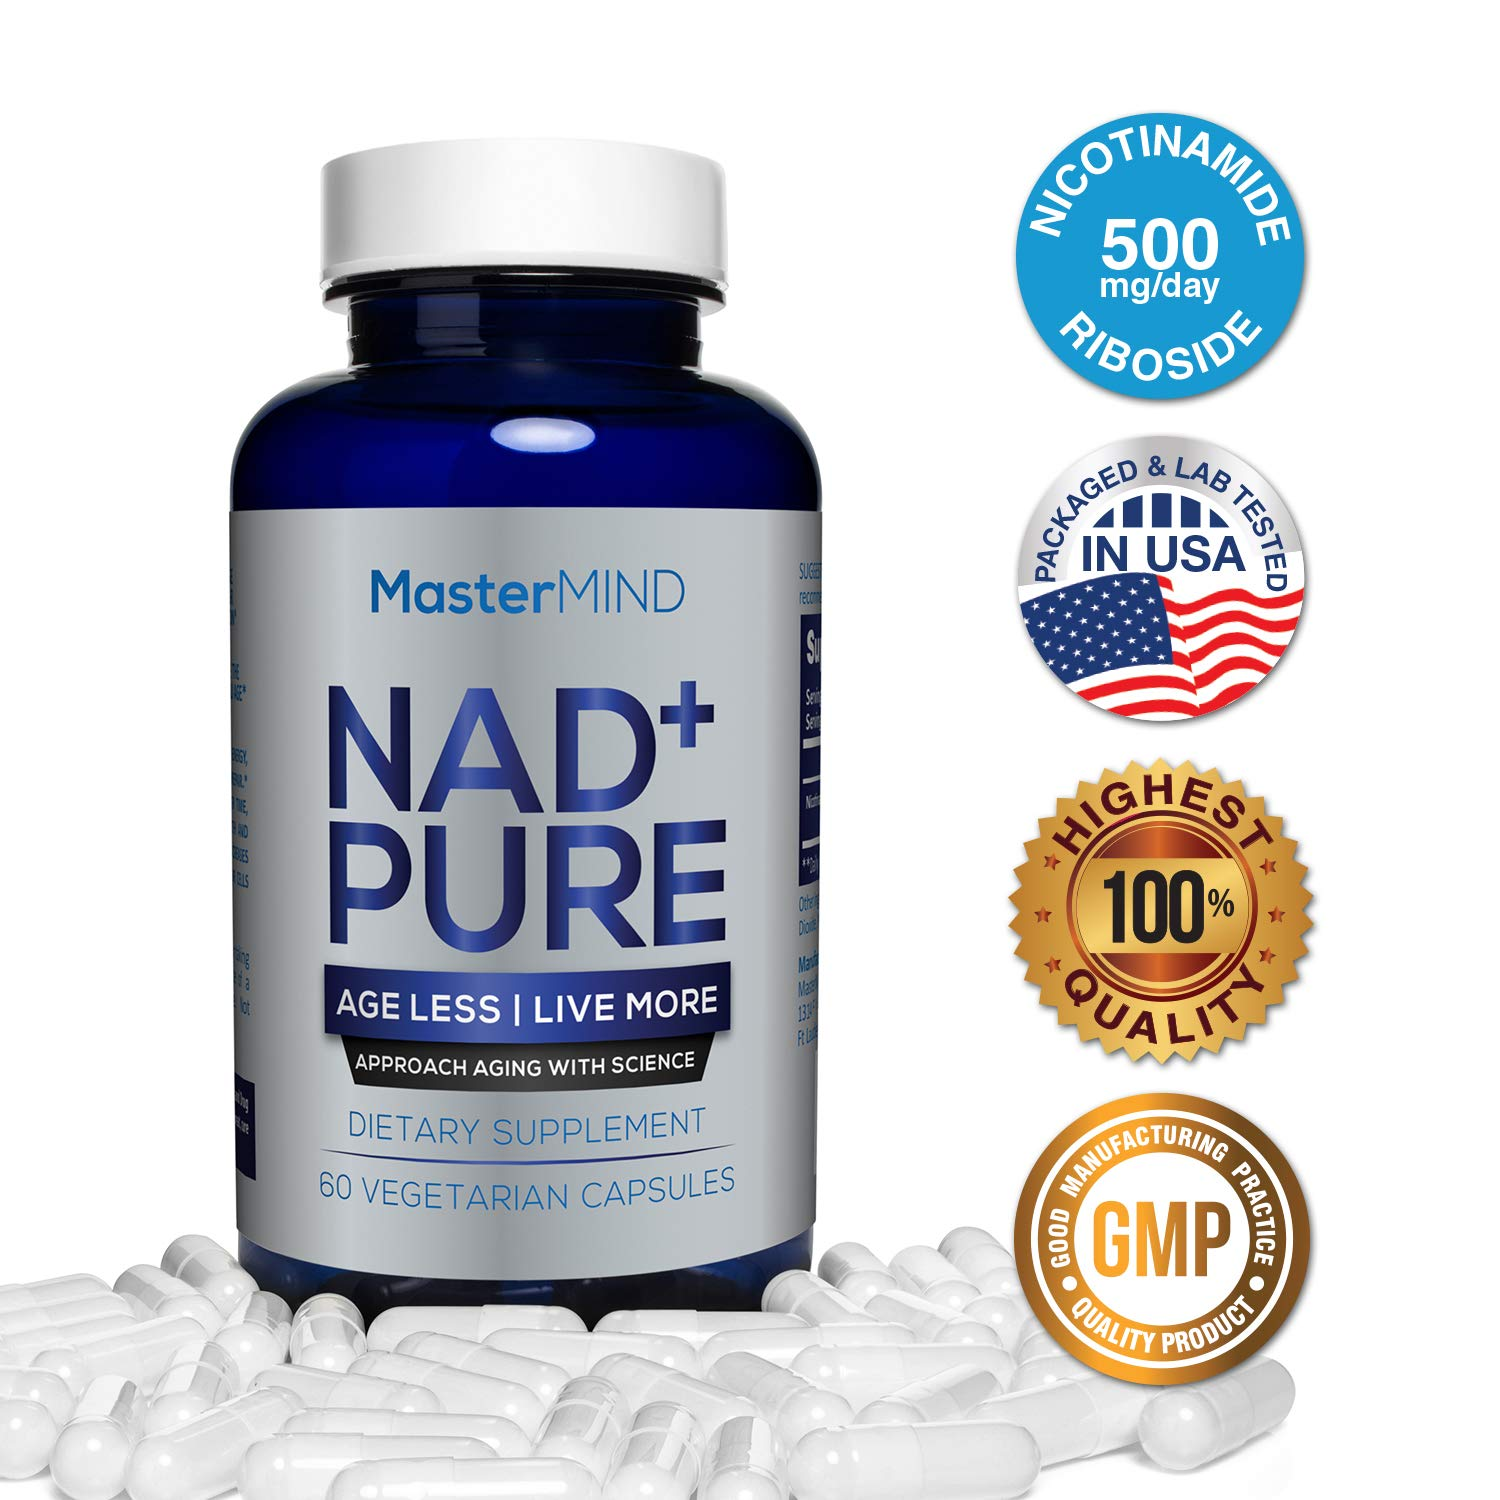 NAD+ Pure I Nicotinamide I Advanced NAD+ Booster I 500mg Serving | Promotes Anti Aging, Increases Energy, Boost Metabolism, Helps Muscle Recovery & Reduce Stress I Vitamin B3 I 60 Capsules (500mg)